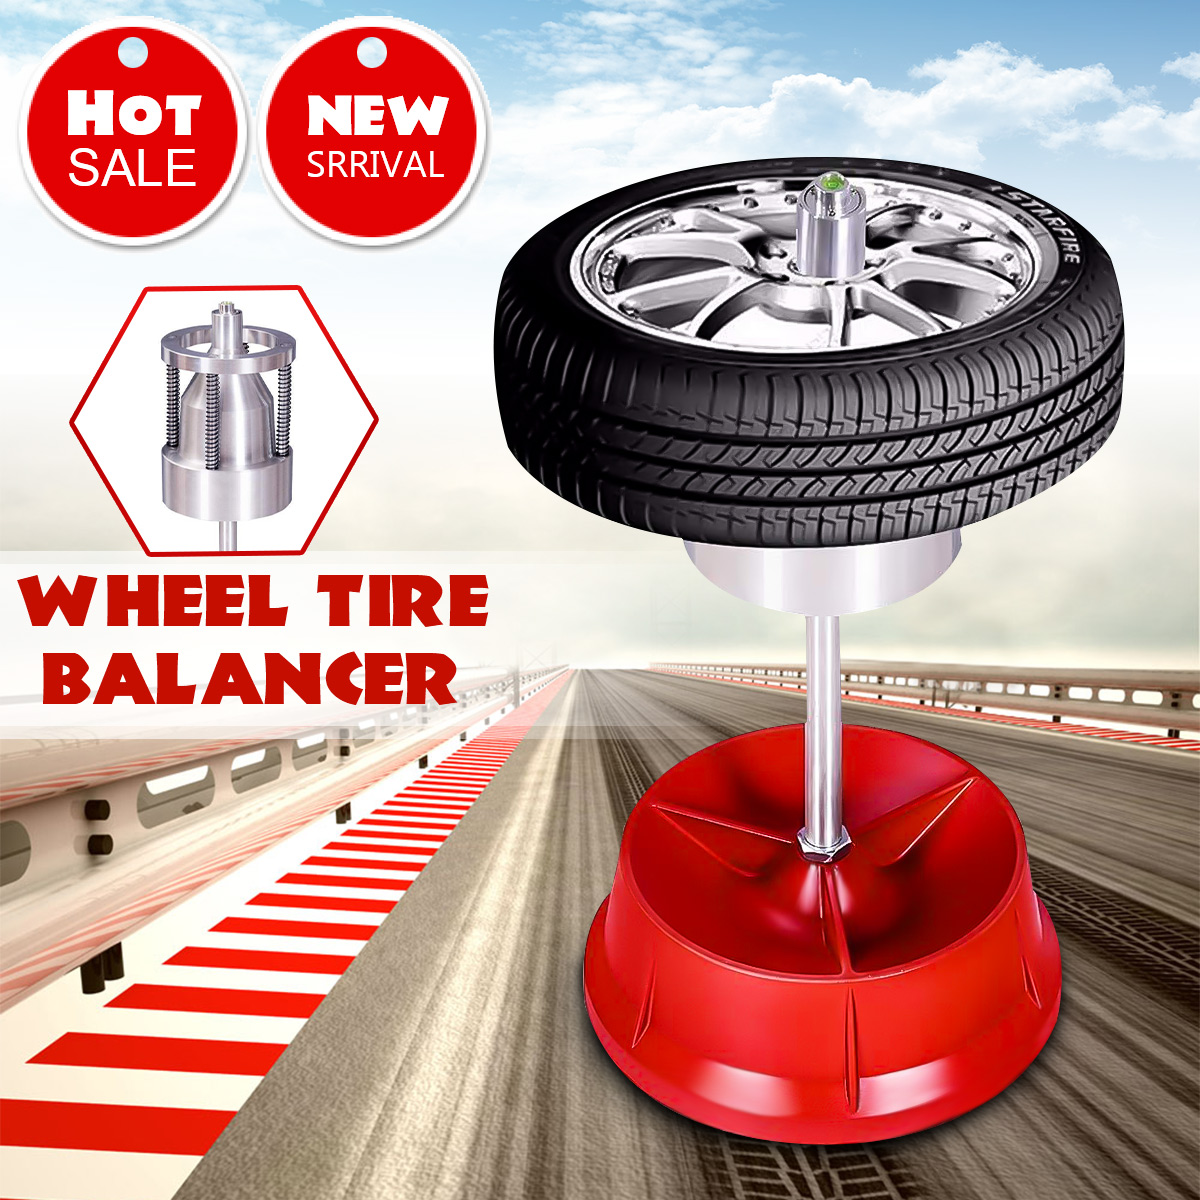 Car Truck Portable Hubs Wheel Tire Balancer Bubble Level Heavy Duty Rim Car Tire Wheel Balancer Auto Tyre Balancing MachineCar Truck Portable Hubs Wheel Tire Balancer Bubble Level Heavy Duty Rim Car Tire Wheel Balancer Auto Tyre Balancing Machine